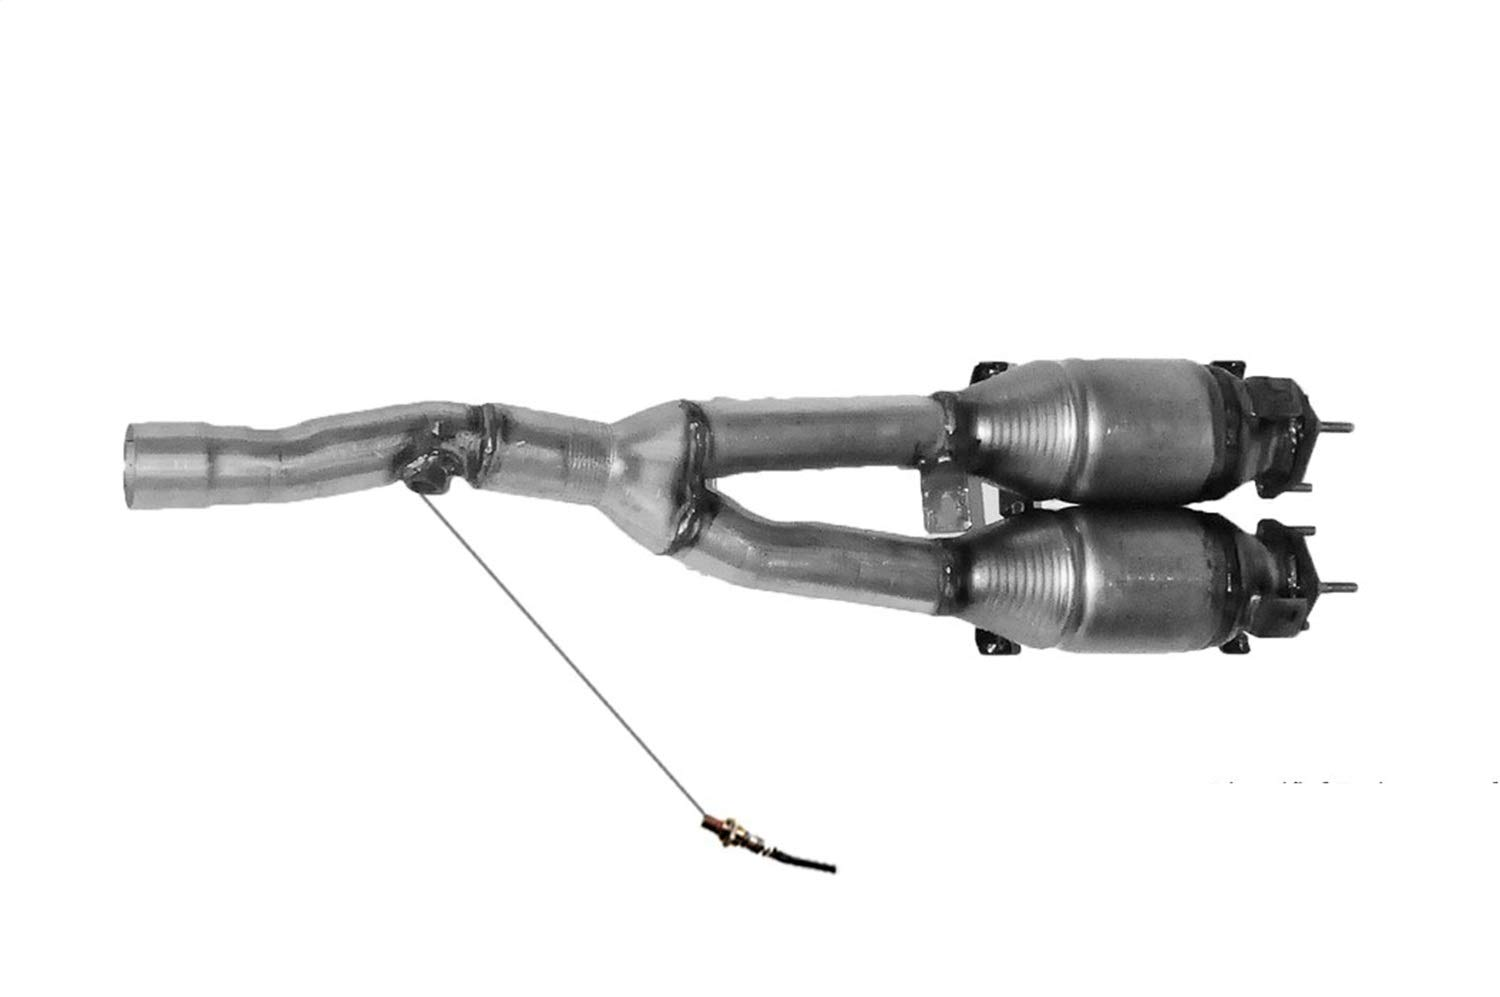 Non C.A.R.B. Compliant Pacesetter 324684 Raw Steel Direct Fit Catalytic Converter for 2000 Audi TT Quattro 1.8